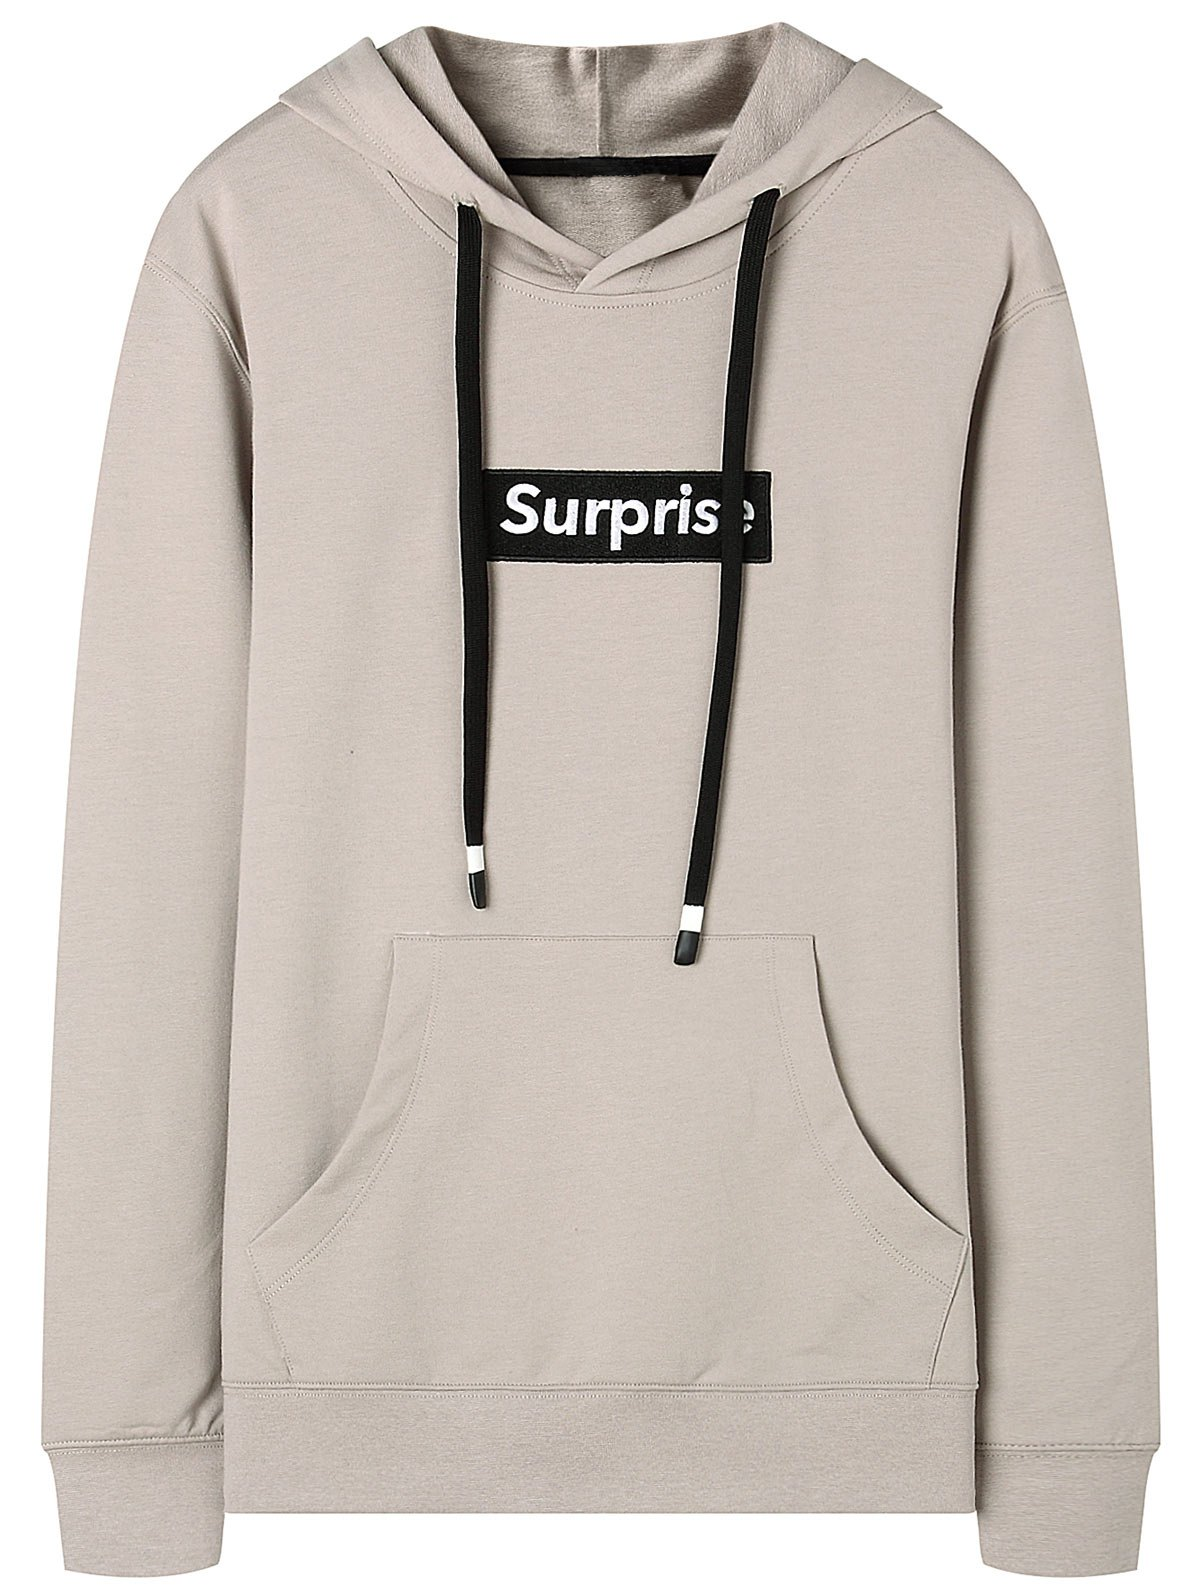 Graphic Surprise Hoodie